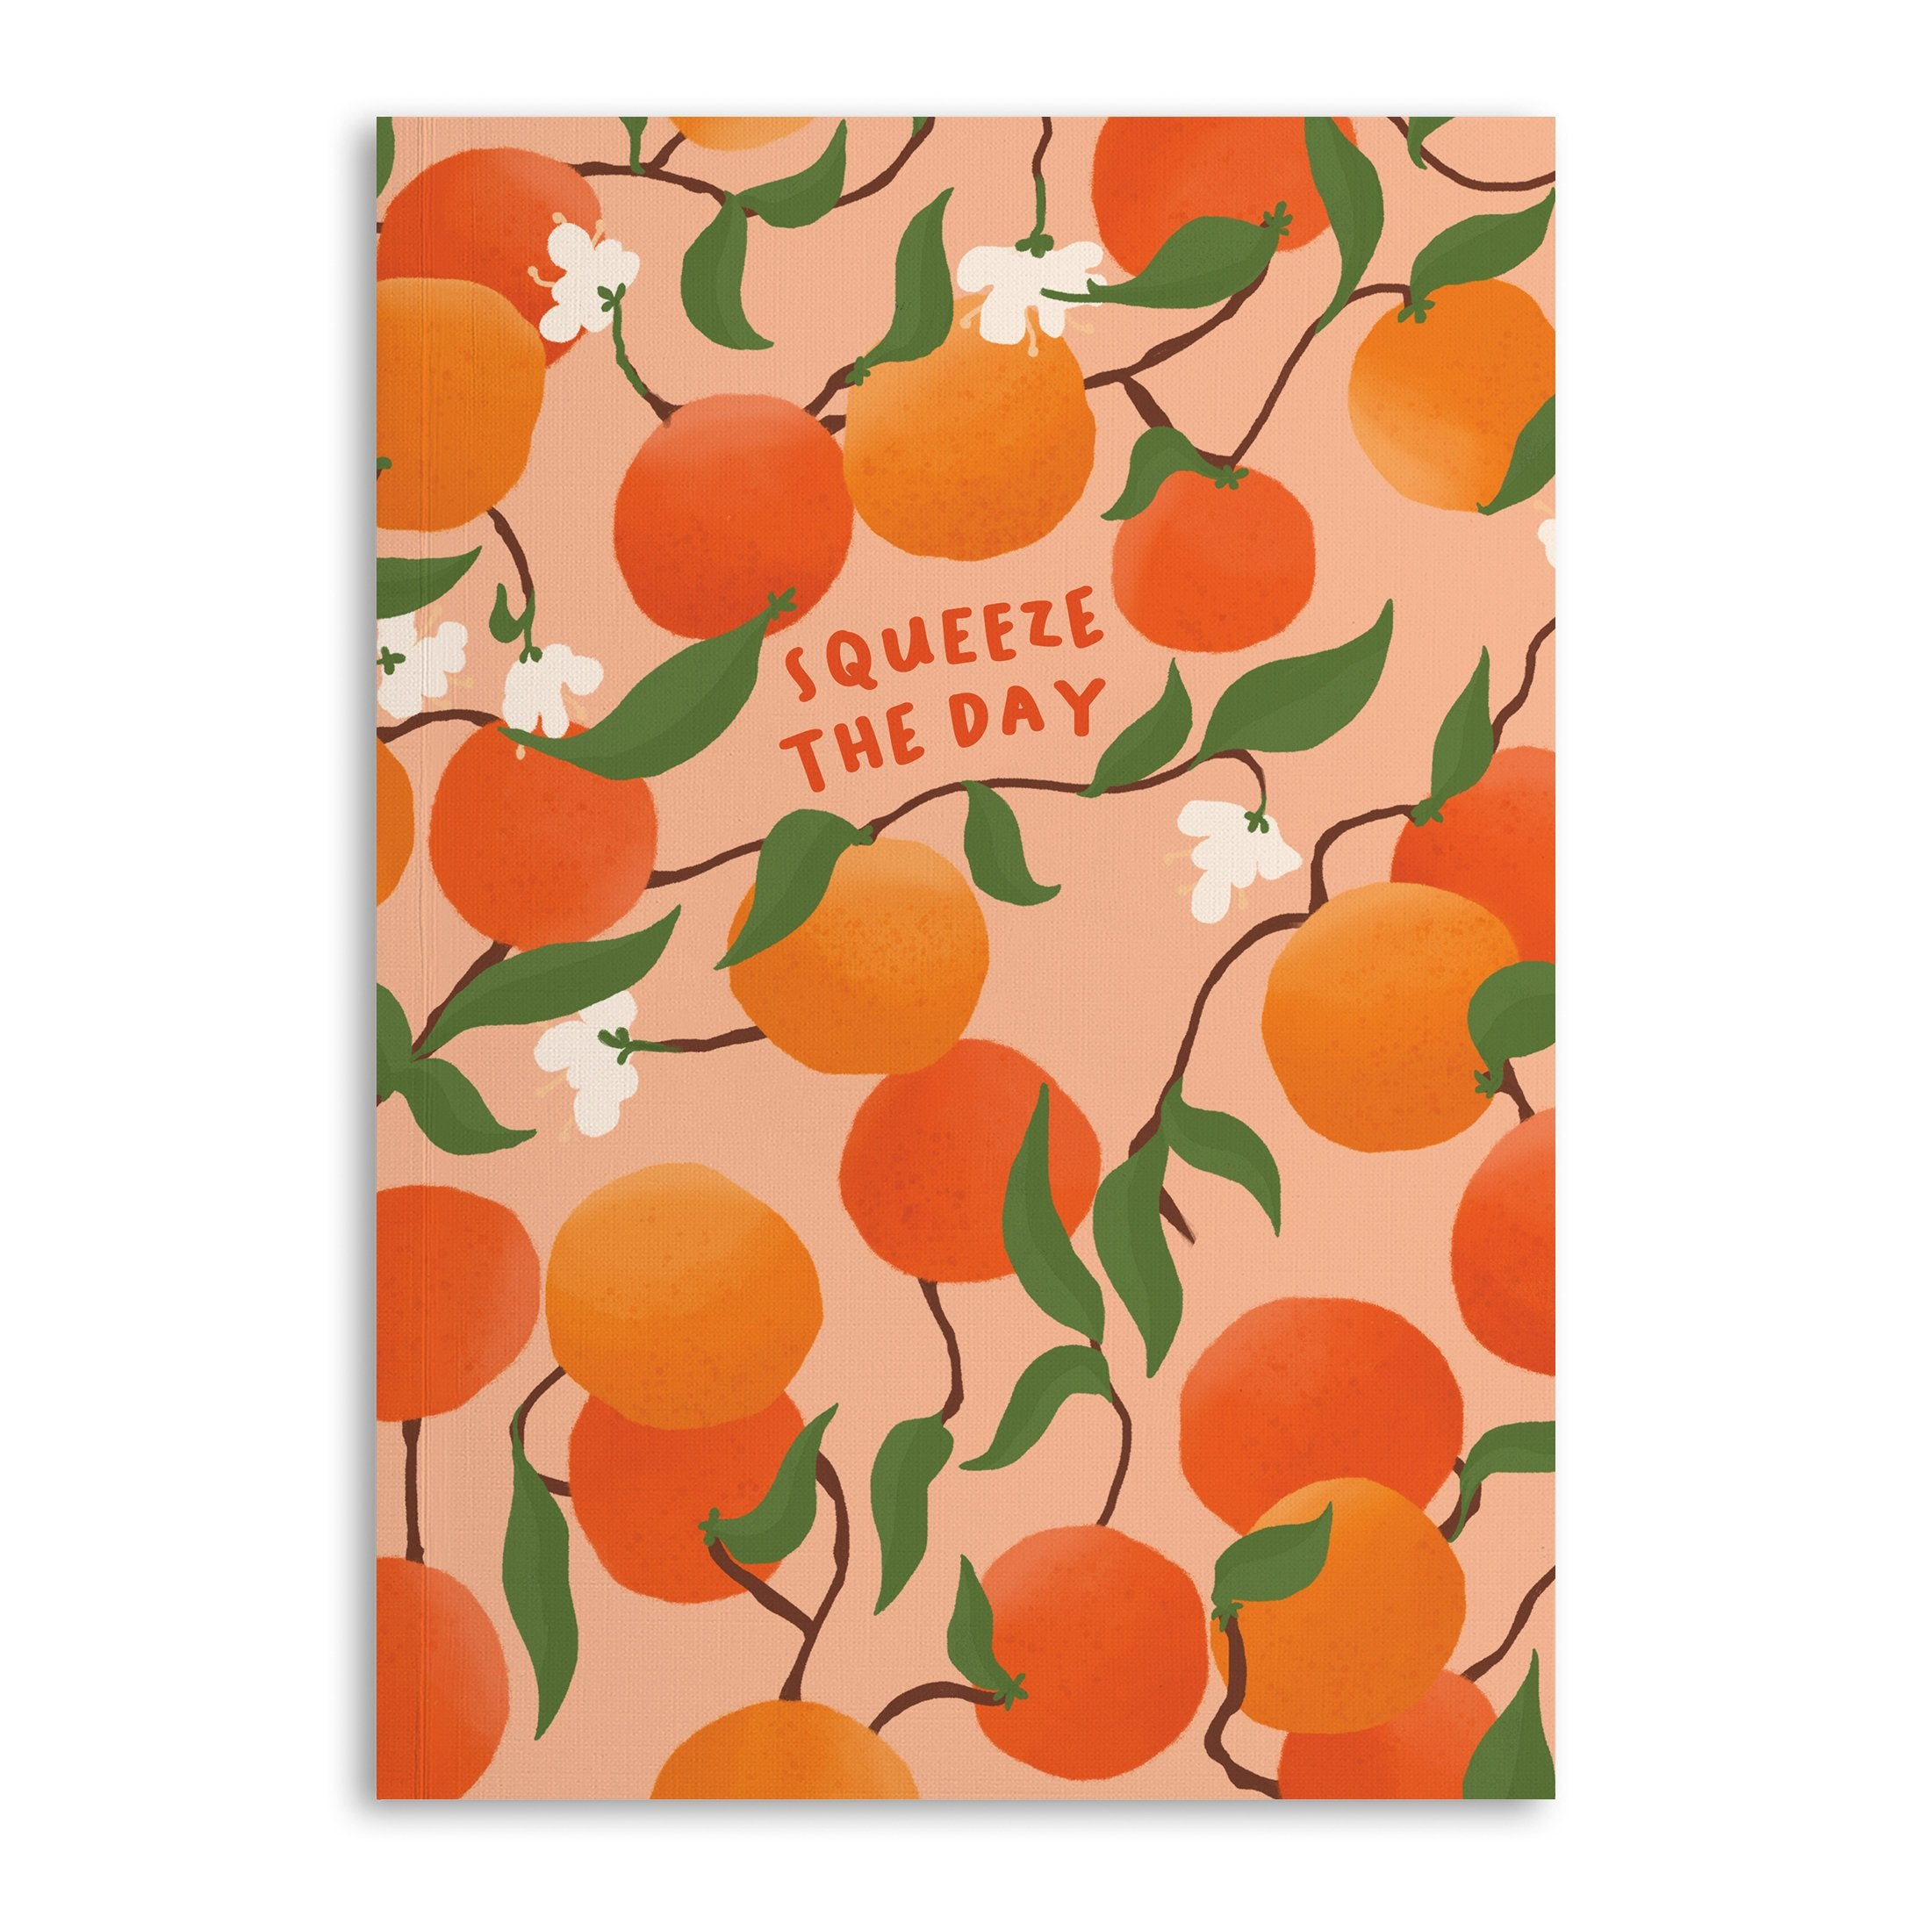 Squeeze The Day A5 Notebook